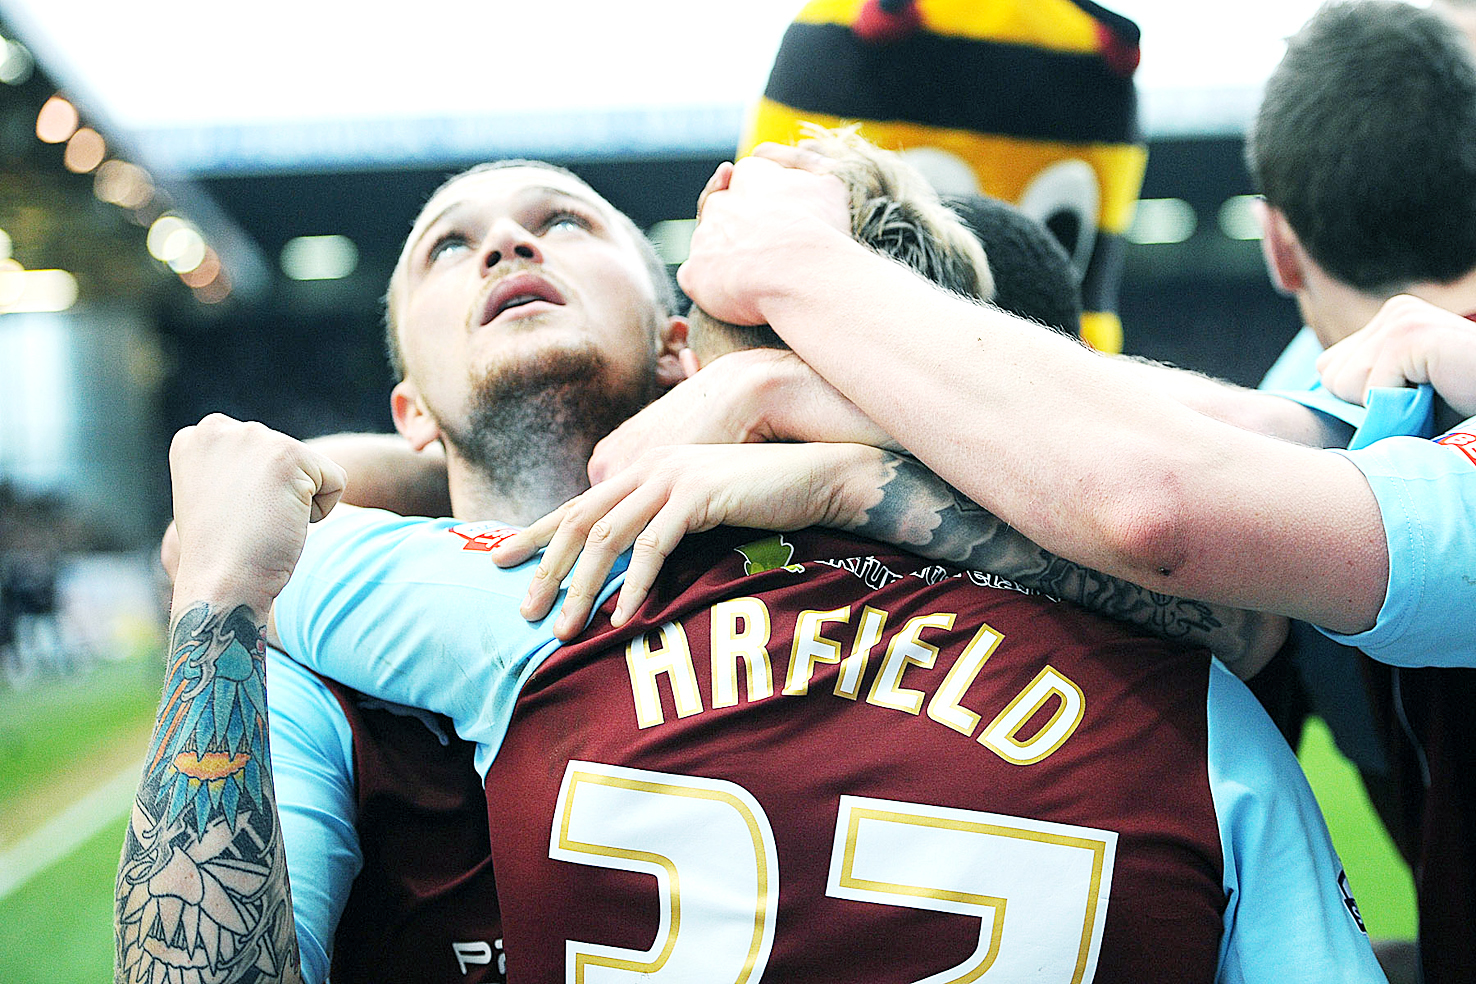 Burnley celebrate their win over Leeds United